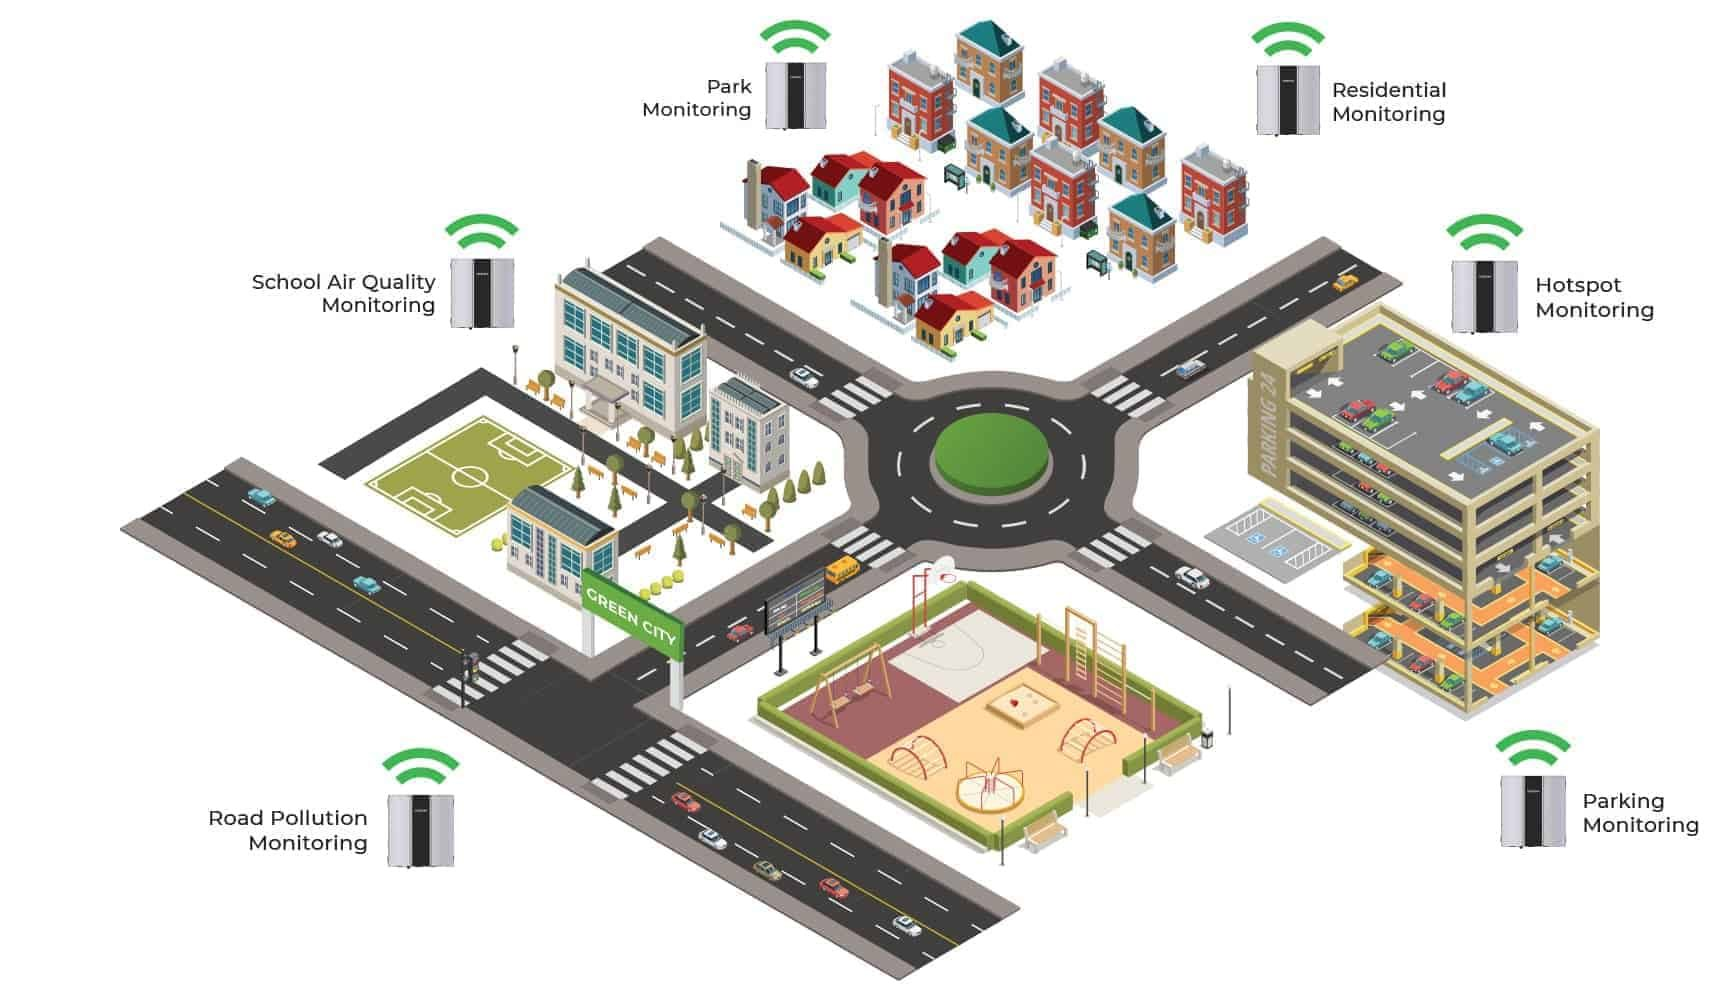 Oizom alerts the residents of a campus using Outdoor Air Quality Monitoring system data analytics.